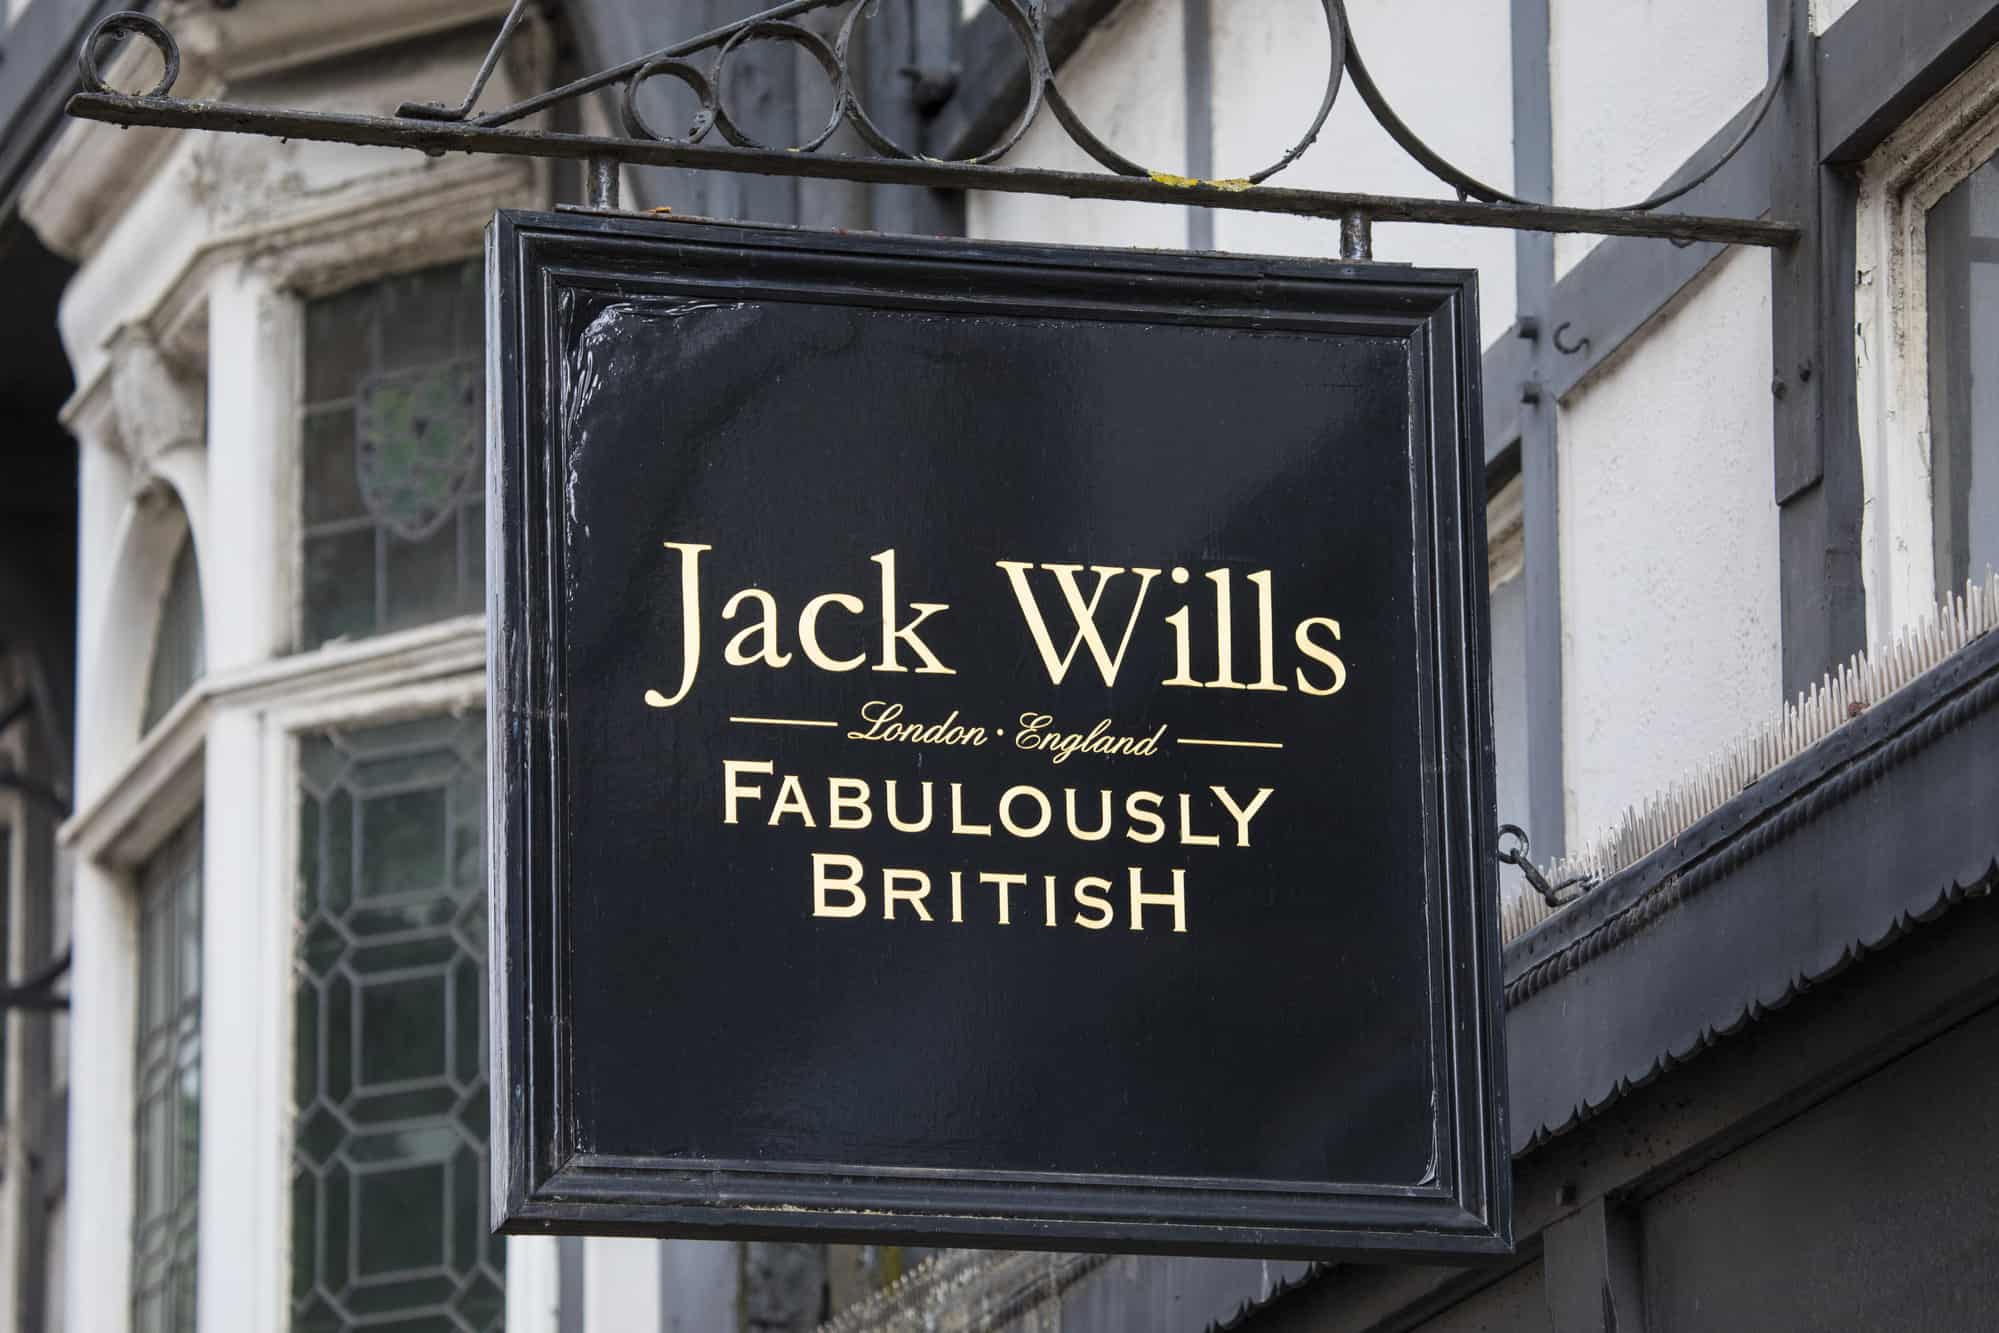 Move of the Week: New Jack Wills CFO is key piece of the jigsaw